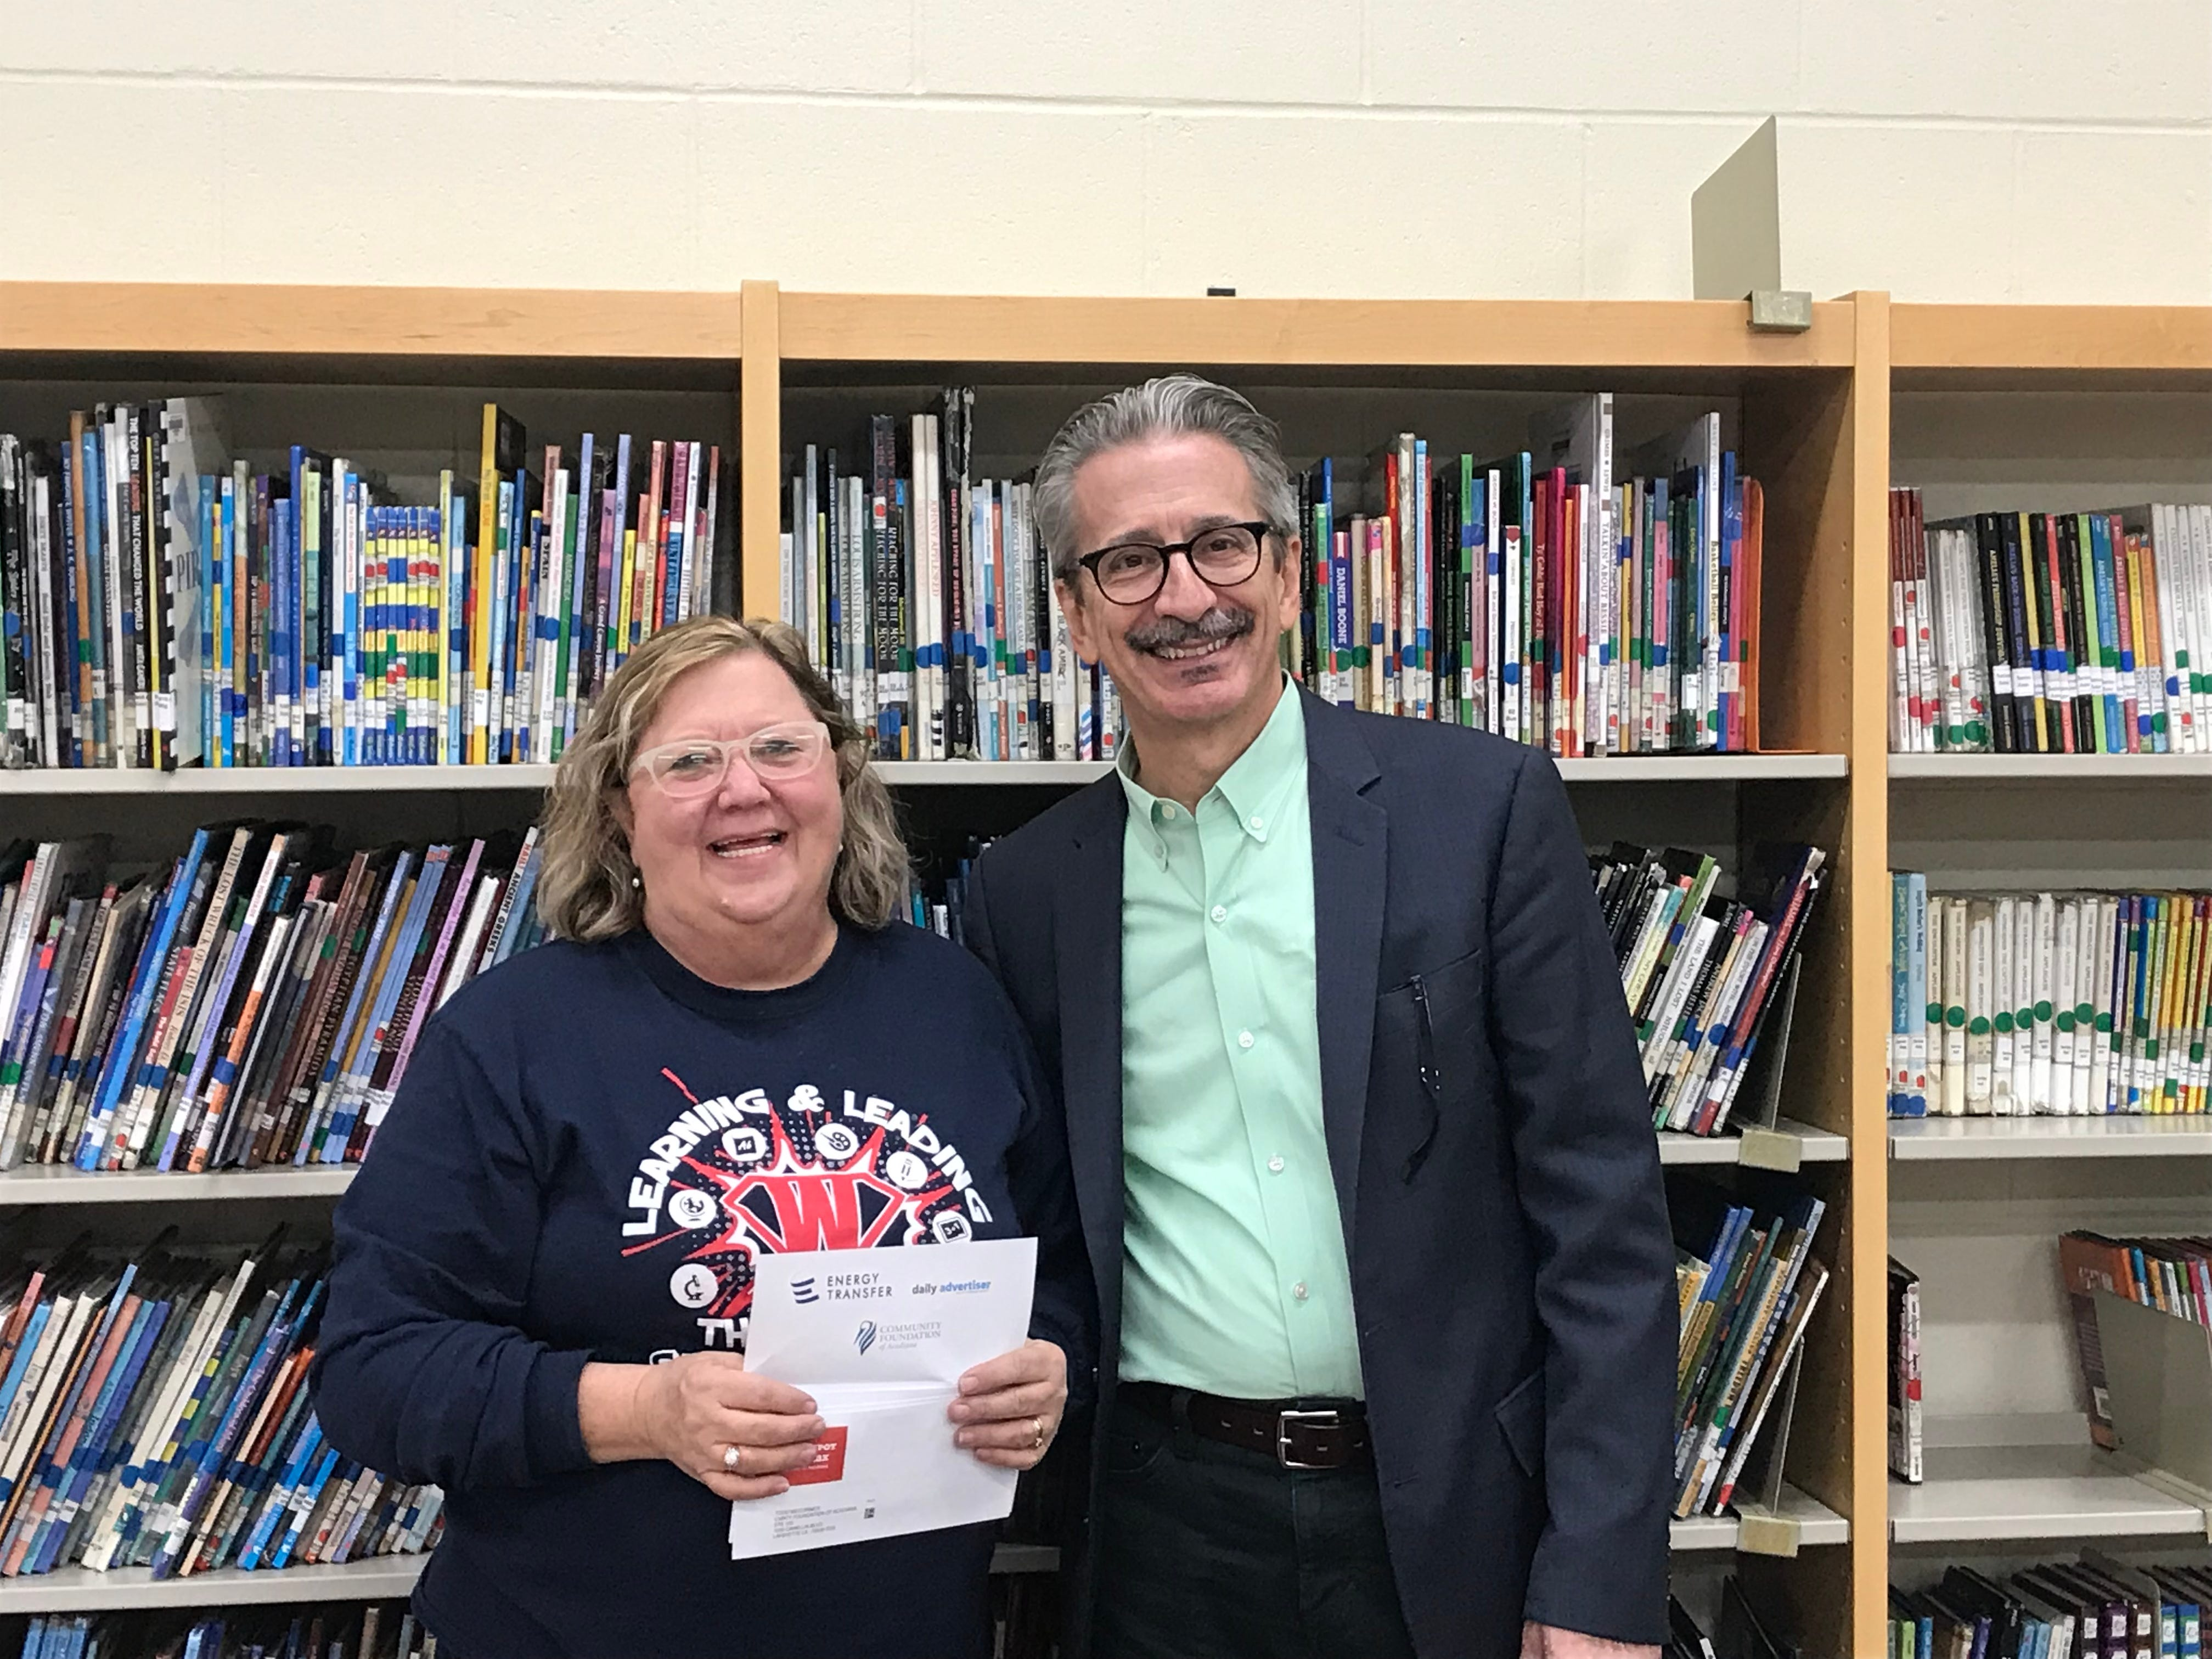 James Flachsenhaar, right, with a Westside Elementary School teacher who received a gift card as a part of The Daily Advertiser's Adopt-A-Teacher drive.  Energy Transfer provided a $25,000 donation and Community Foundation of Acadiana assisted in securing gift cards for more than 400 teachers at 134 schools.